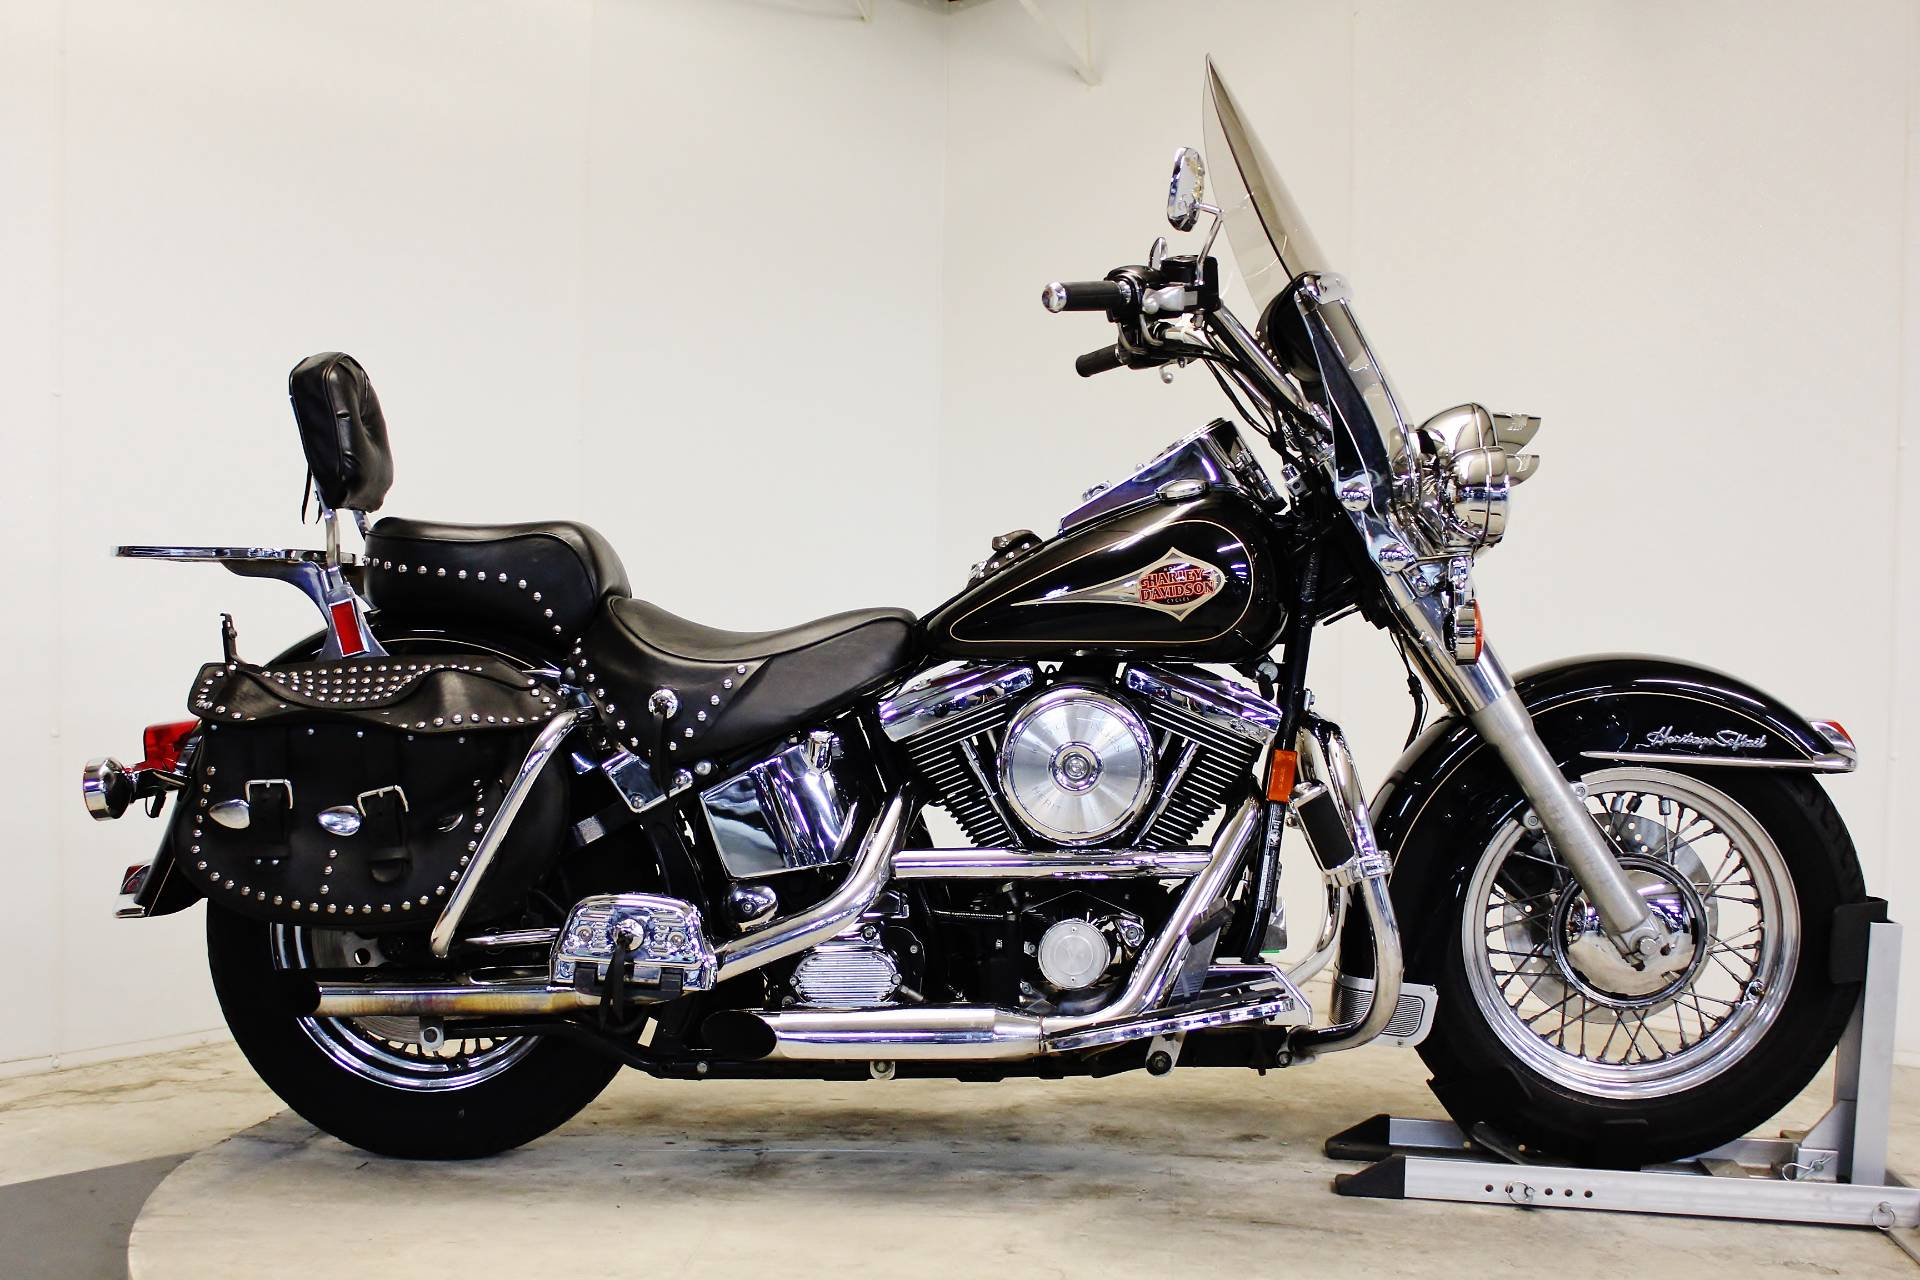 1998 Harley-Davidson Heritage Softail in Pittsfield, Massachusetts